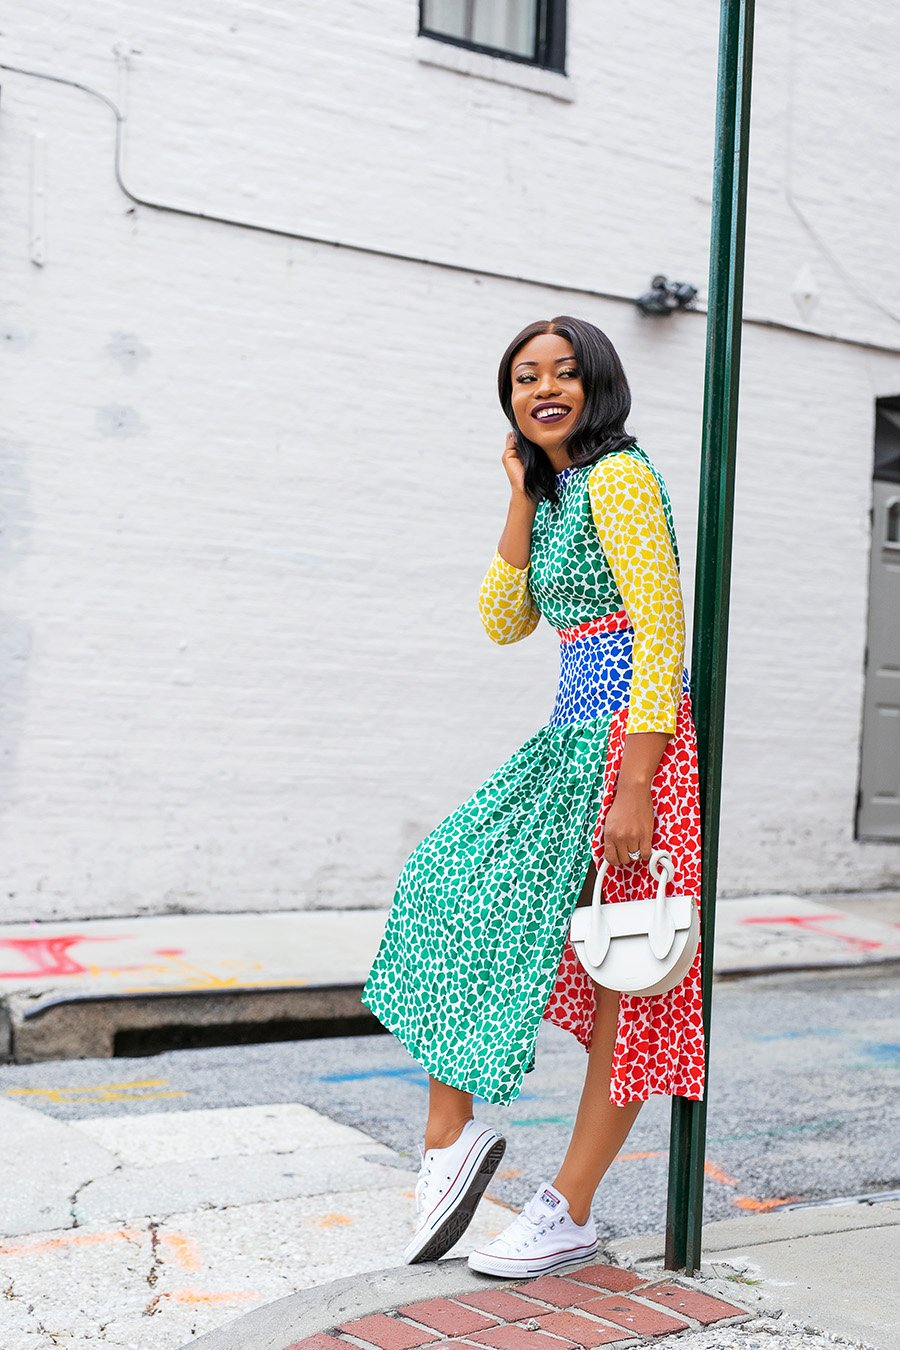 stella-of-jadore-fashion-shares-30-mood-boosting-songs-to-get-through-pandemic